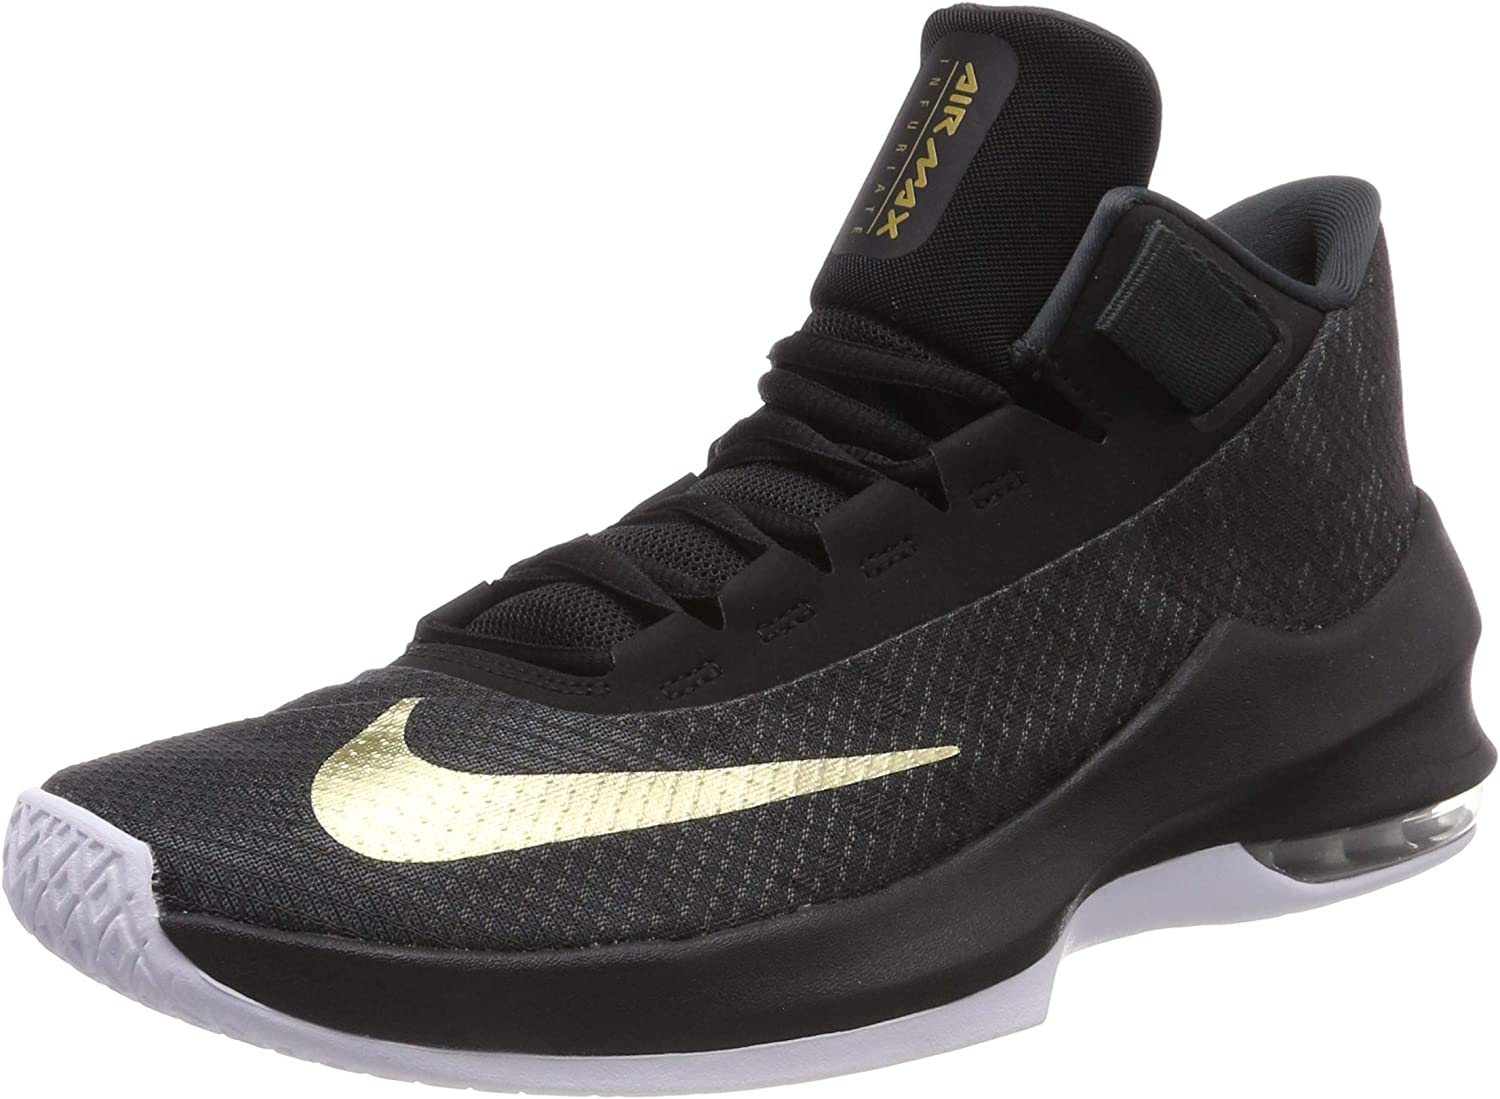 Nike Air Max Infuriate 2 Mid, Chaussures de Basketball Homme